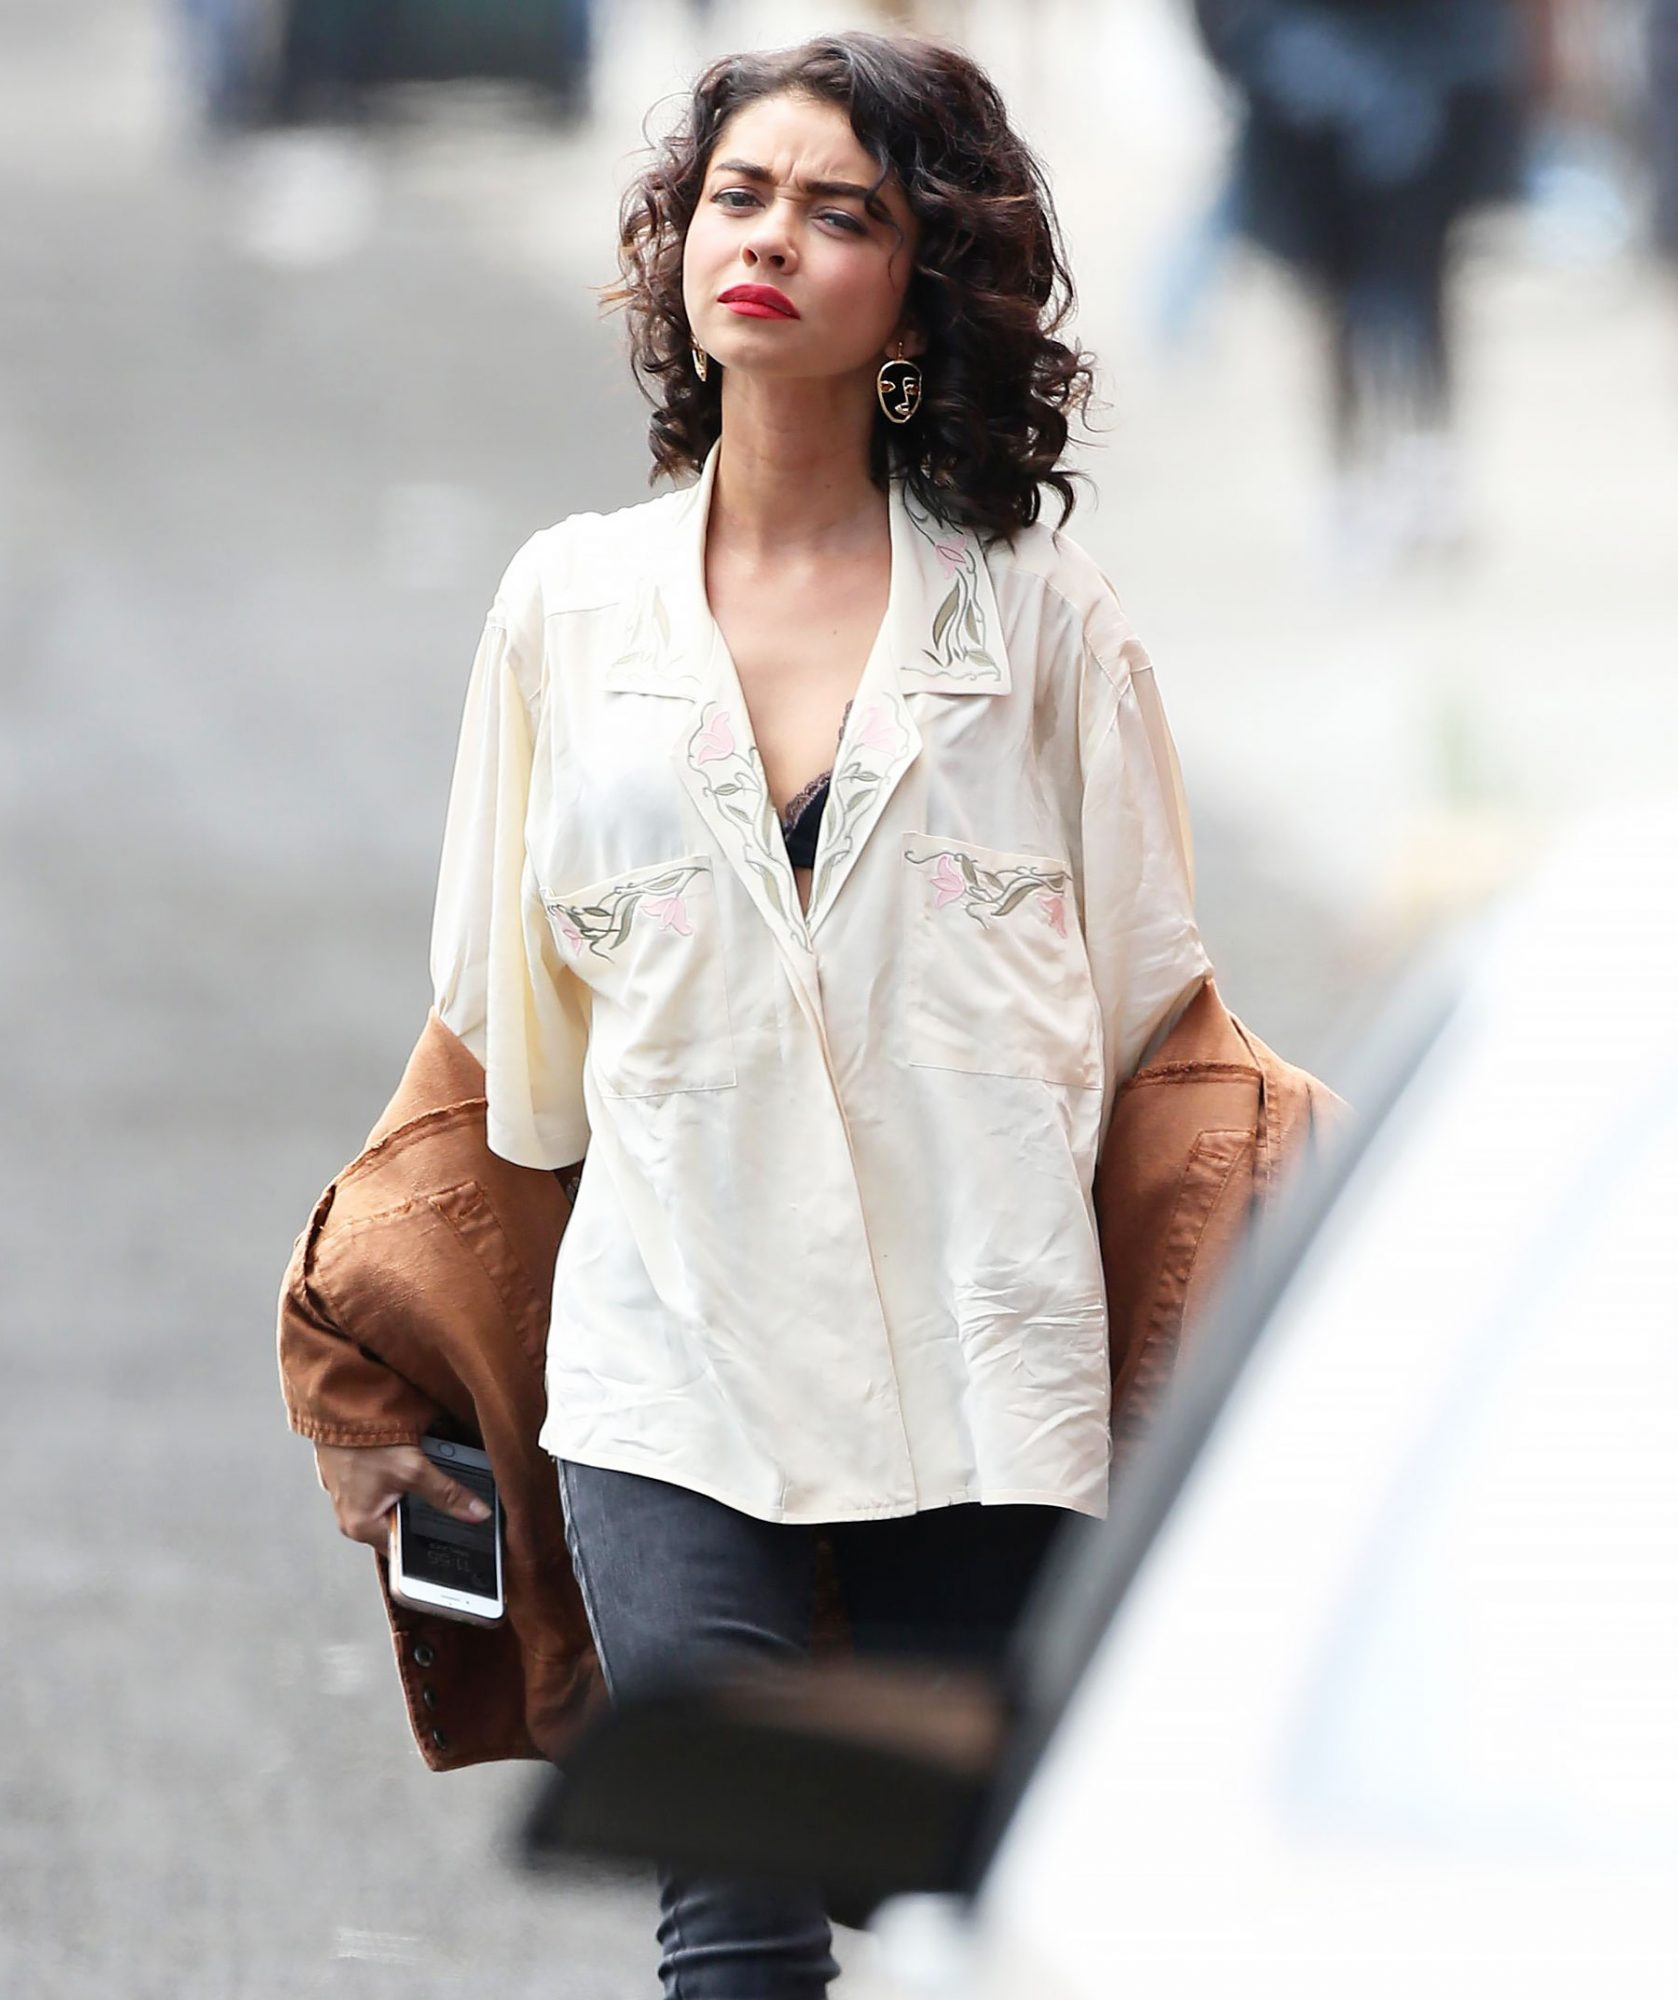 Sarah Hyland films scenes for the romantic comedy 'The Wedding Year' in Los Angeles